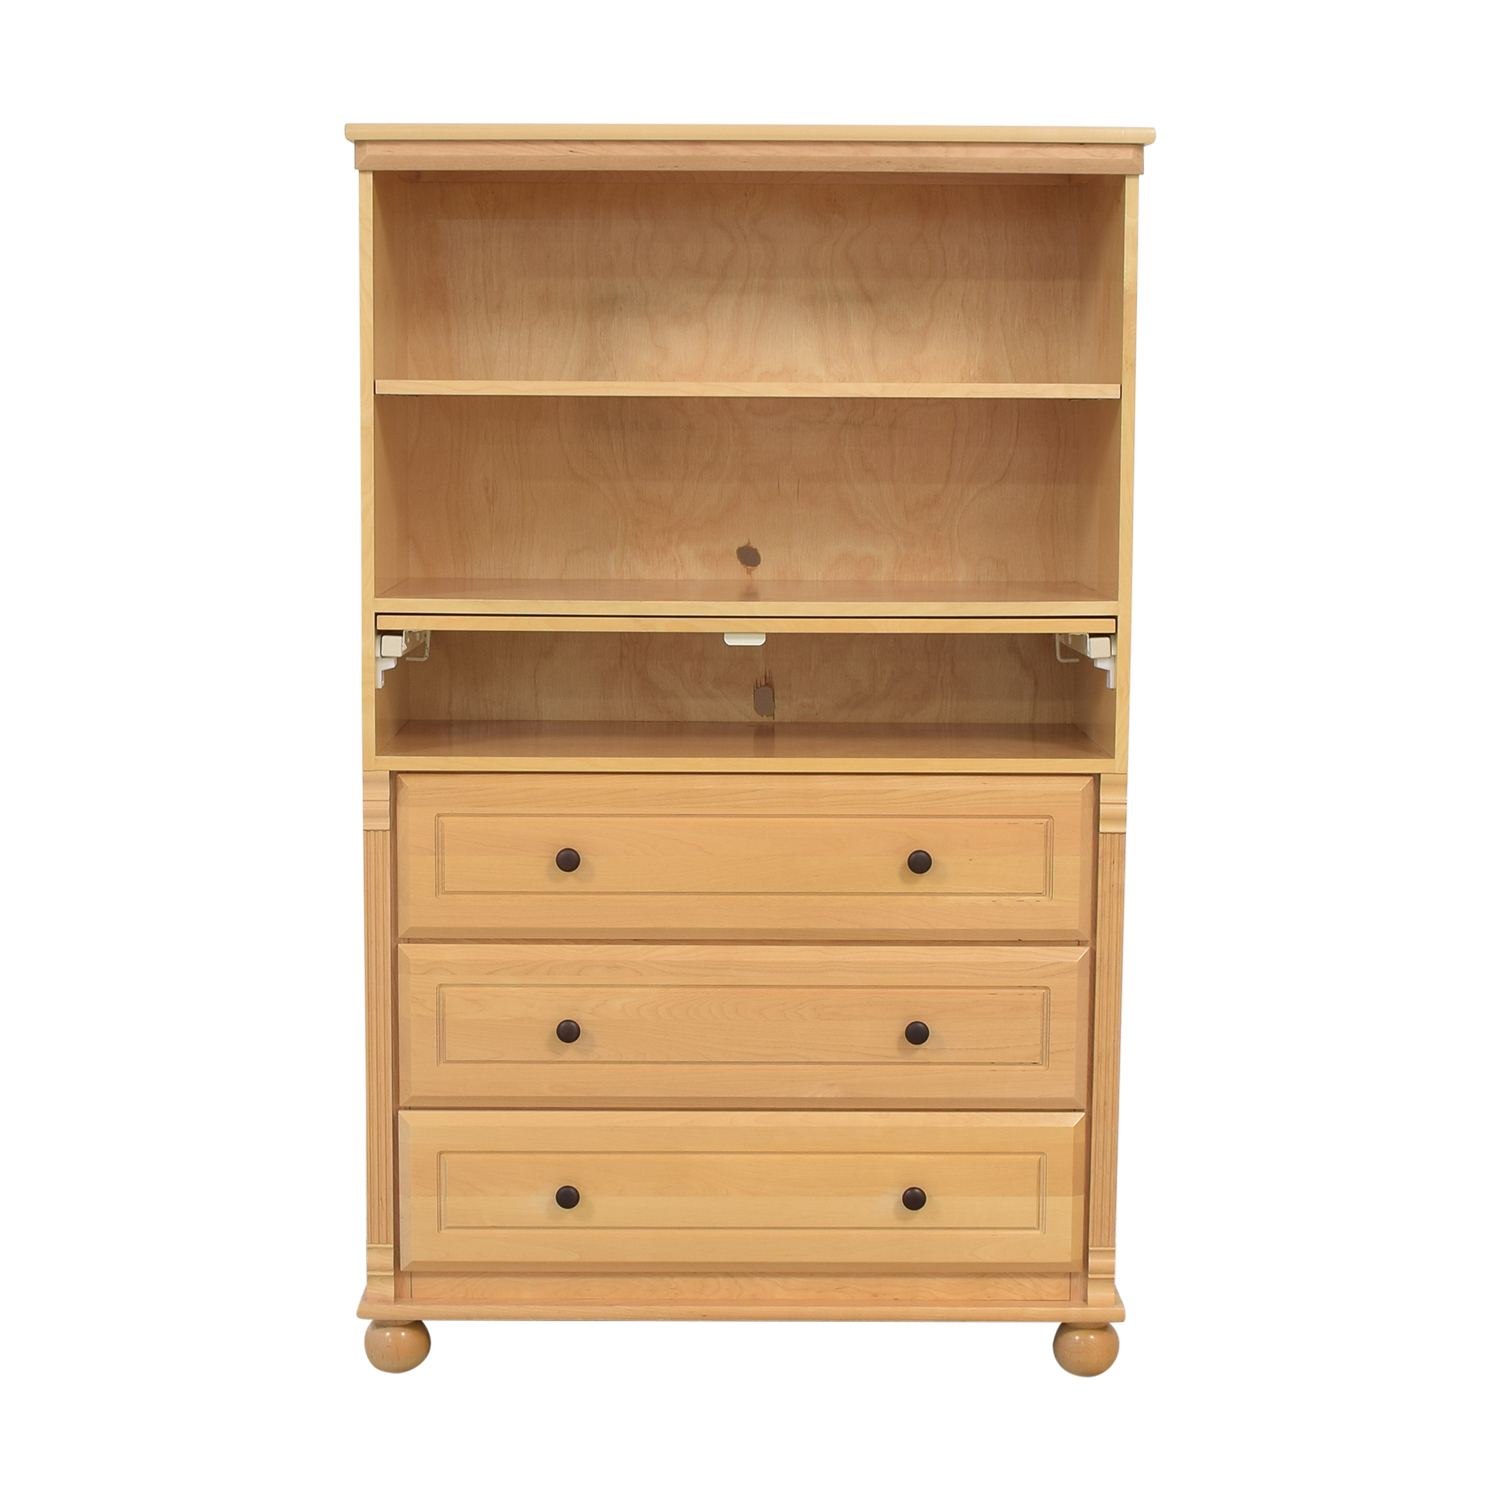 75 off bellini bellini jessica dresser with changing table storage